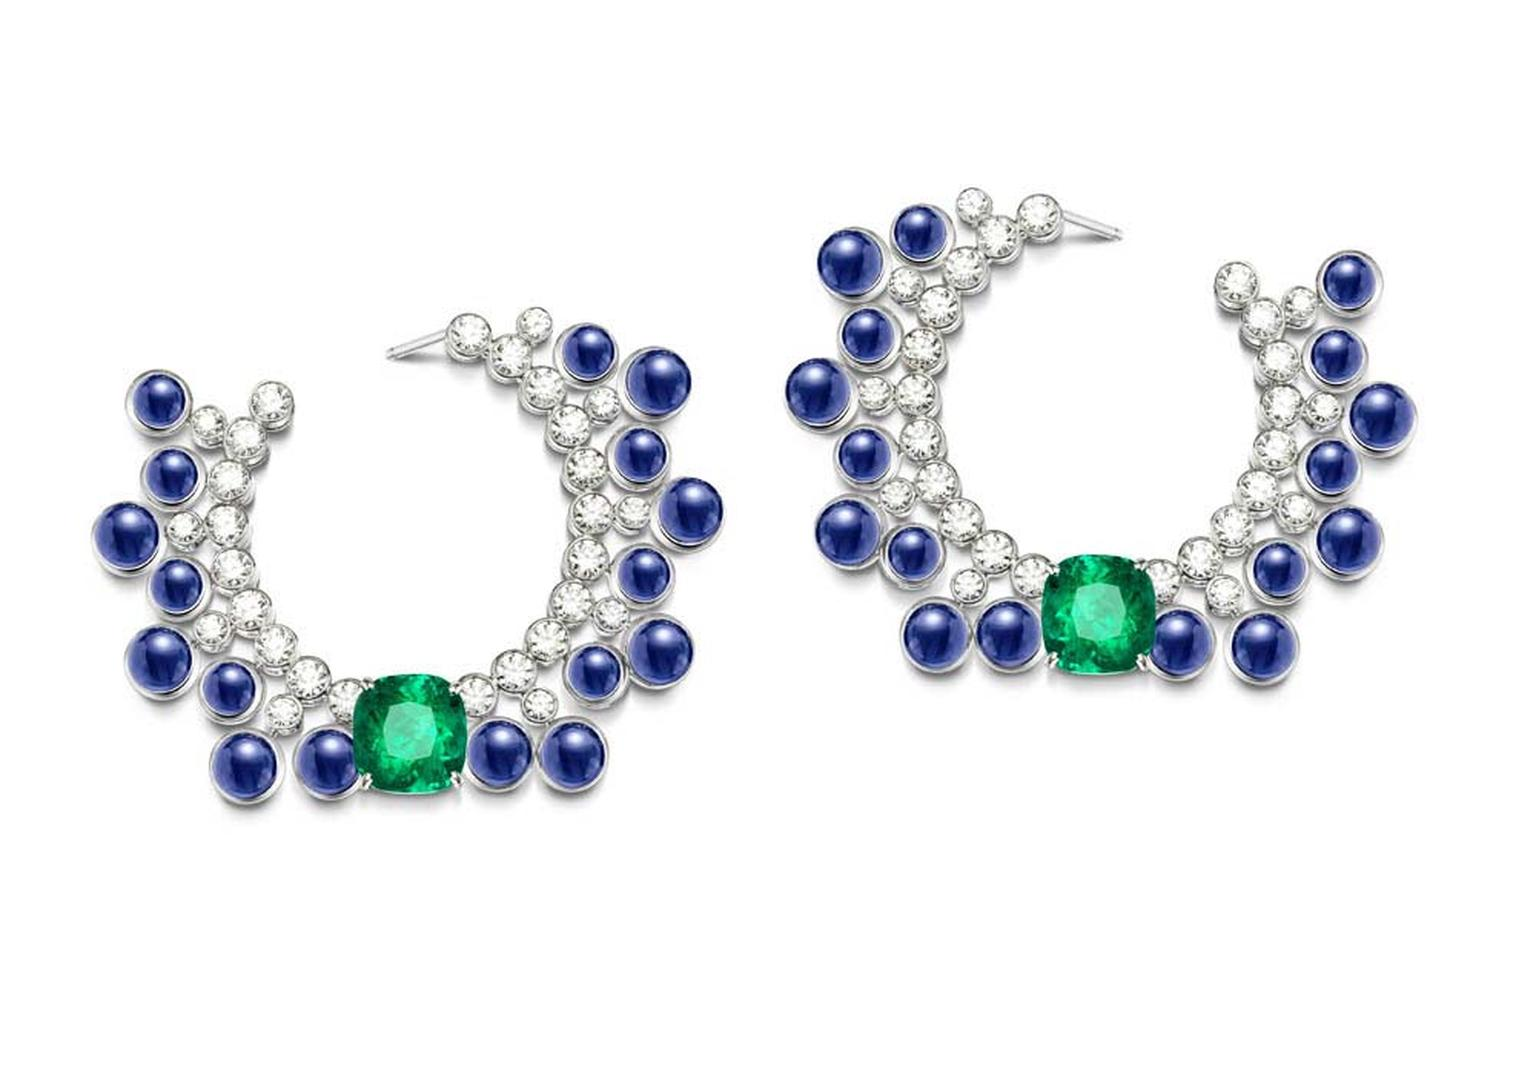 Extremely Piaget collection earrings in white gold set with 34 cabochon-cut blue sapphires, two cushion-cut emeralds and brilliant-cut diamonds.